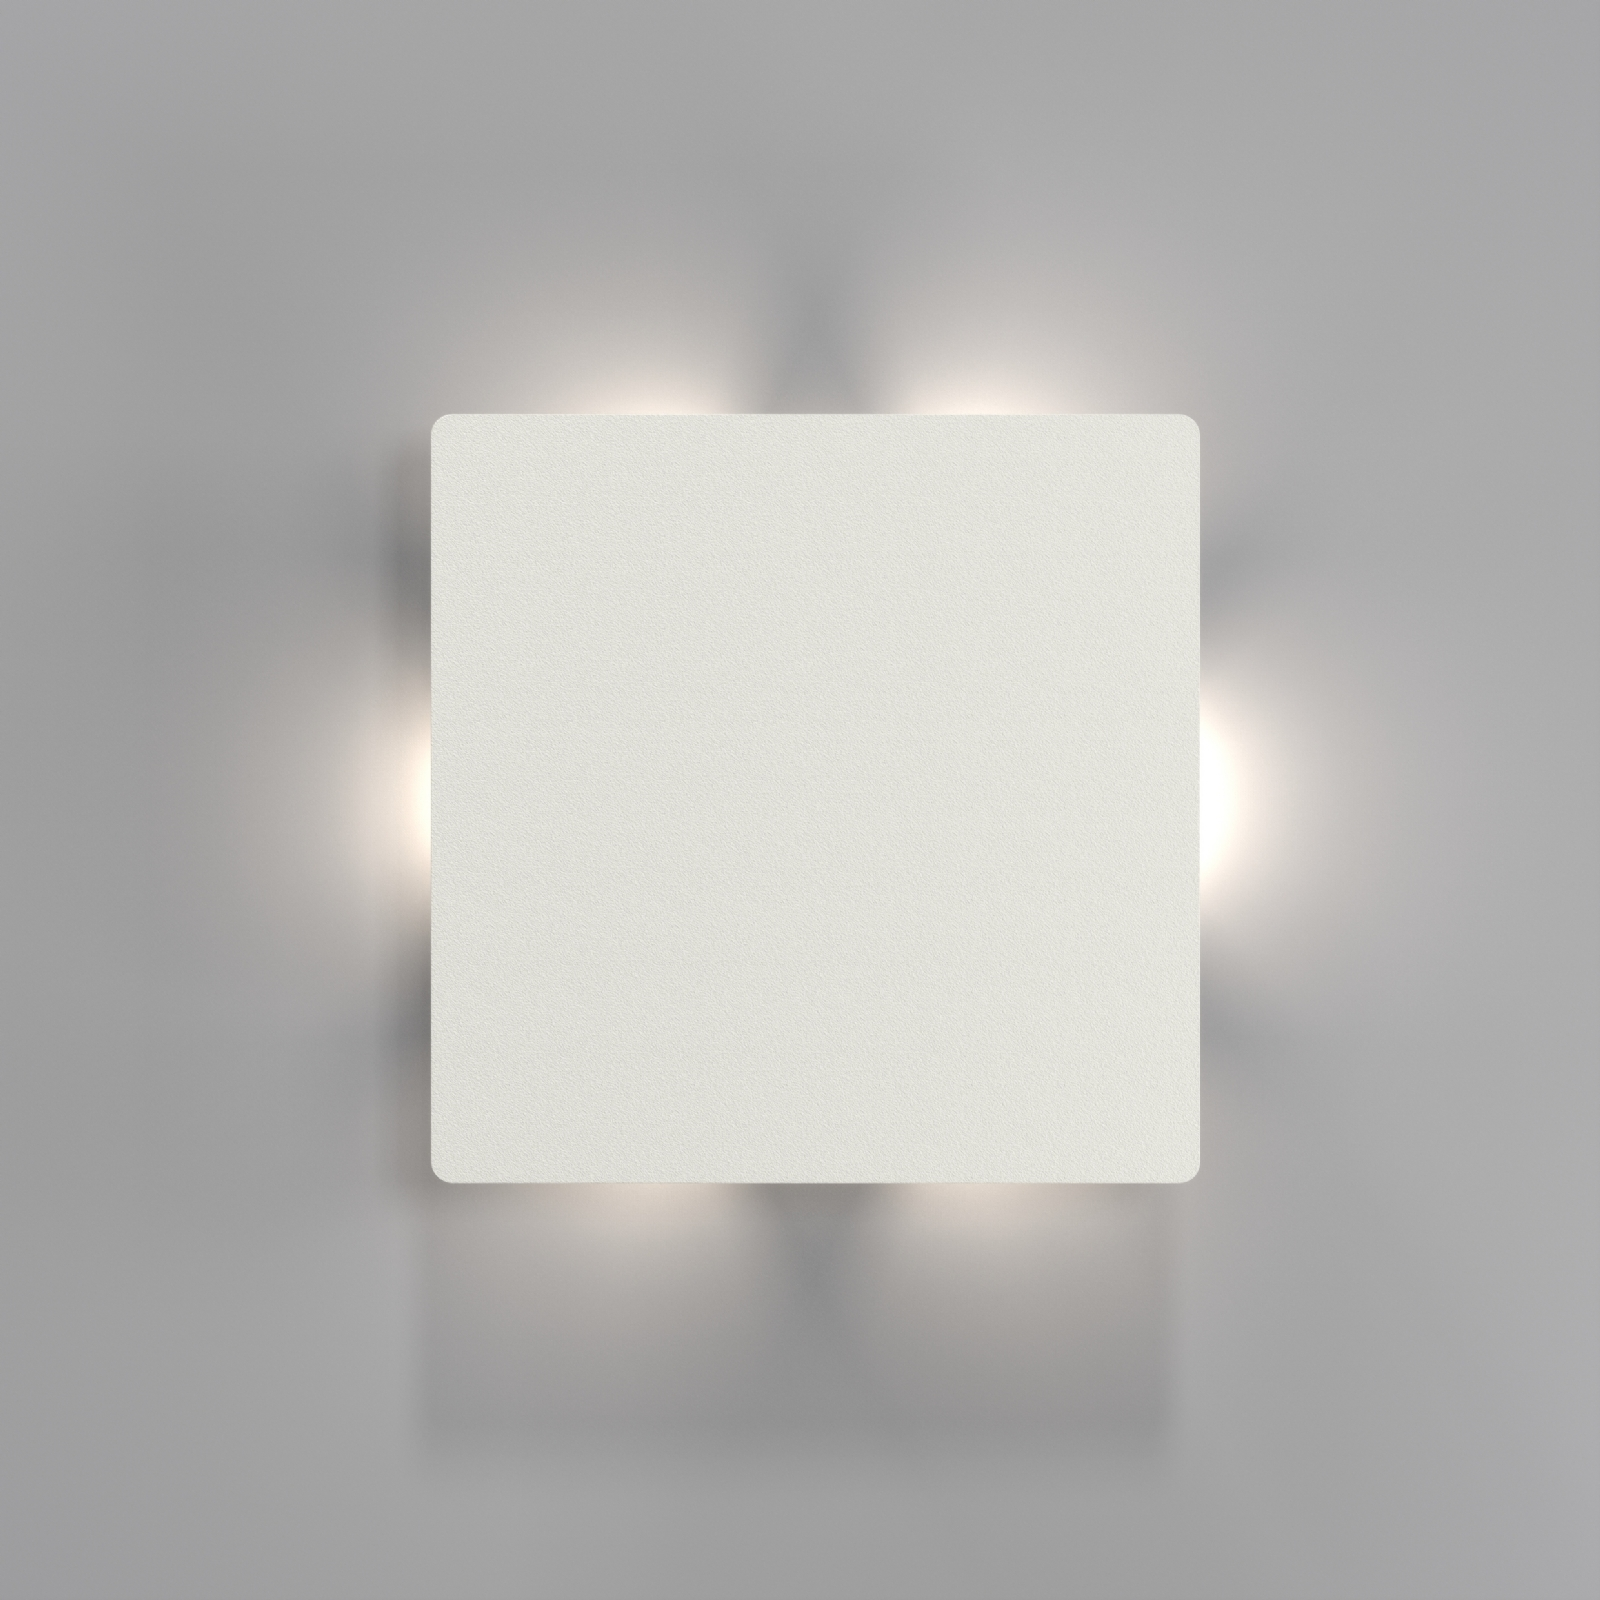 Square Led Wall Light Ip44 3 Light Patterns